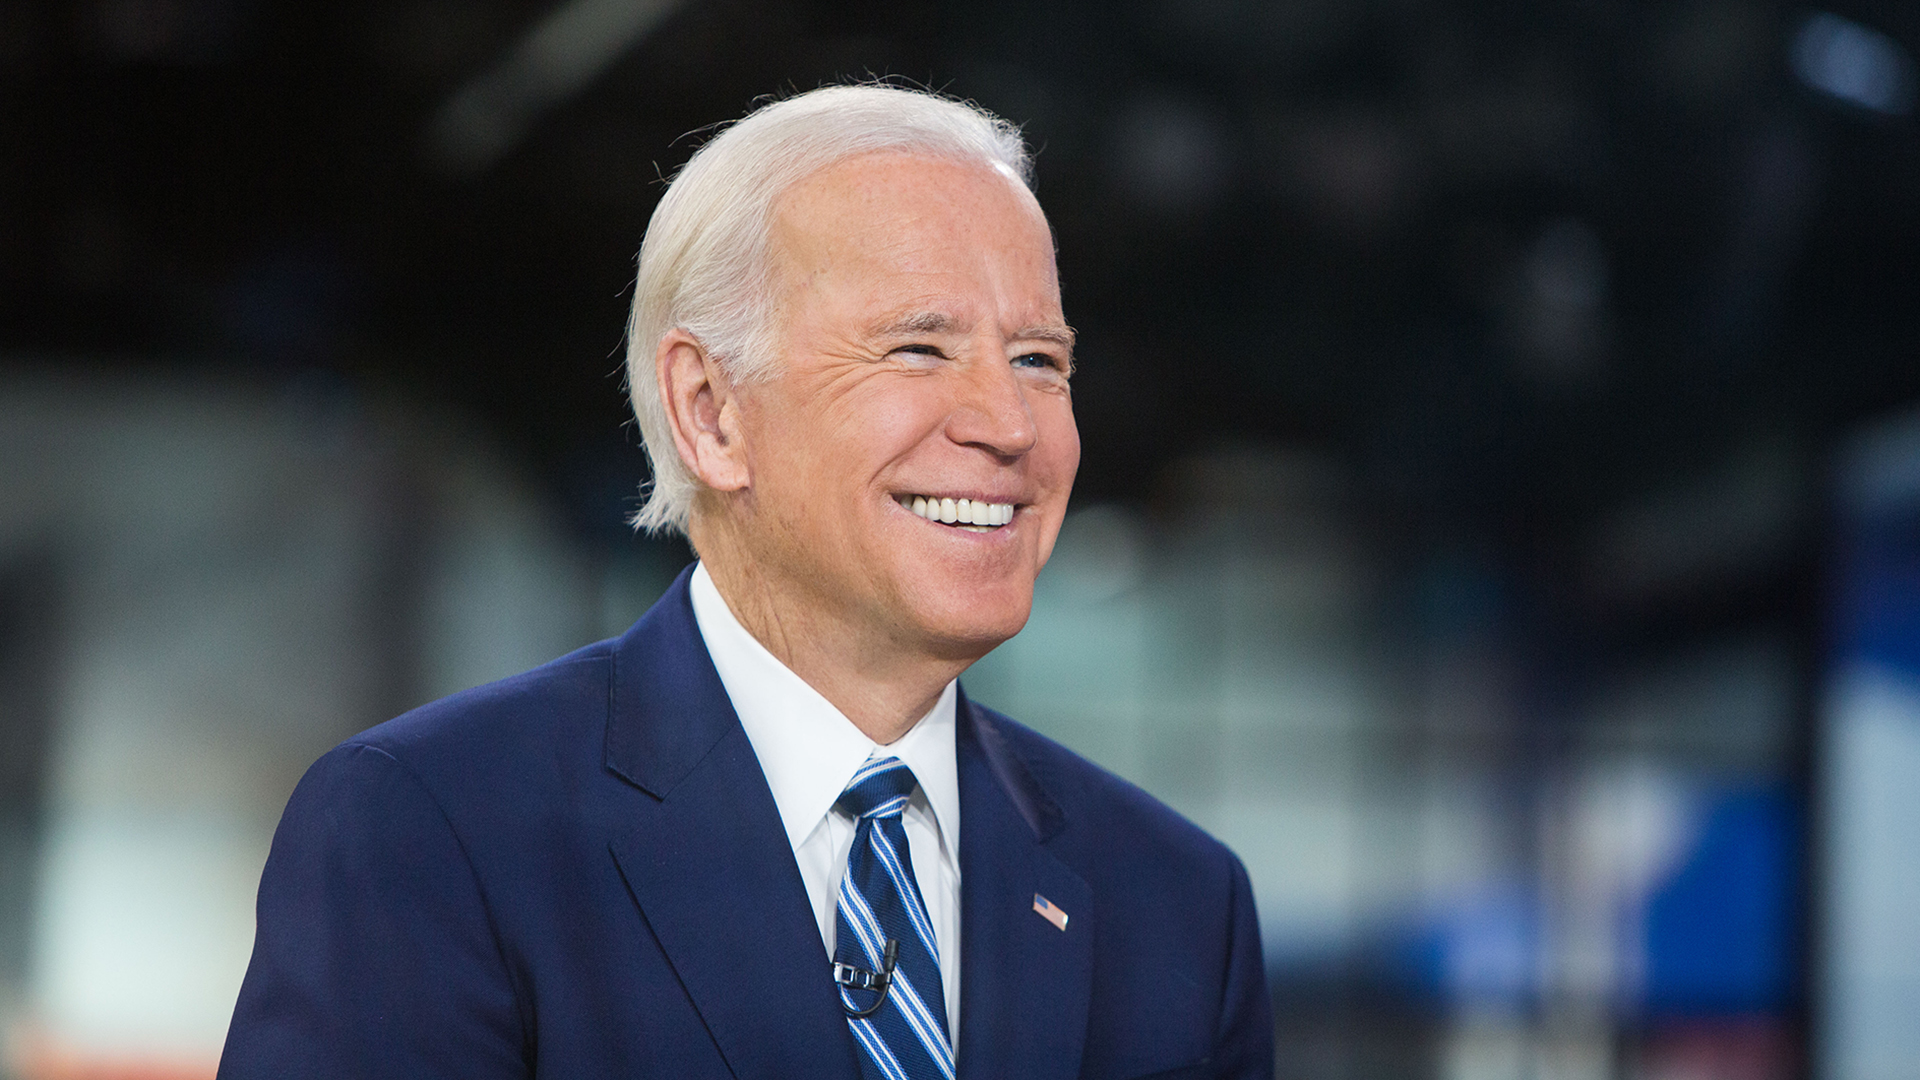 Joe Biden: 'I'm not closing the door' on a presidential ...